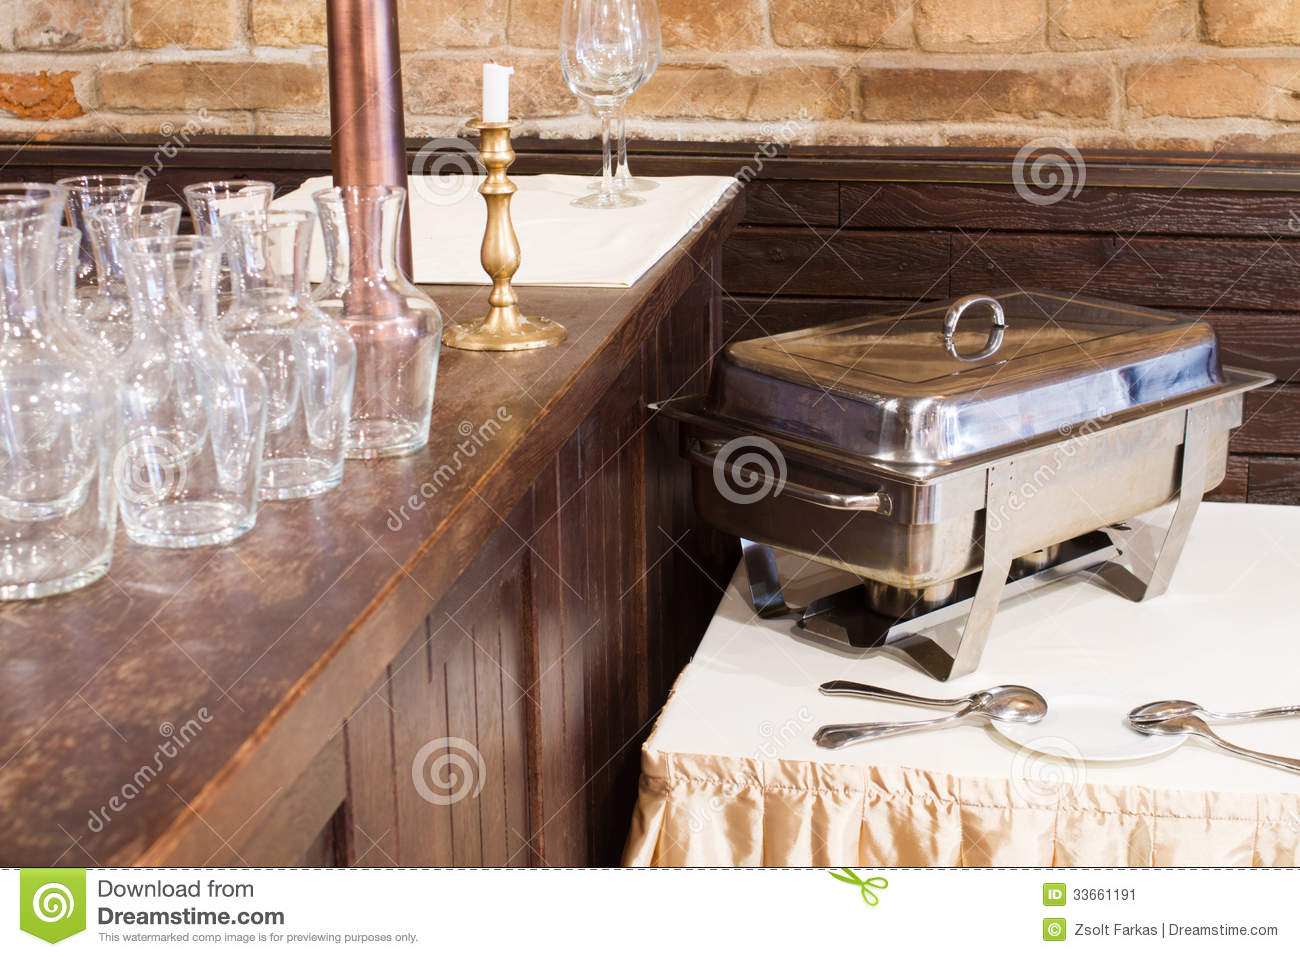 Empty glasses and metal kitchen equipments.